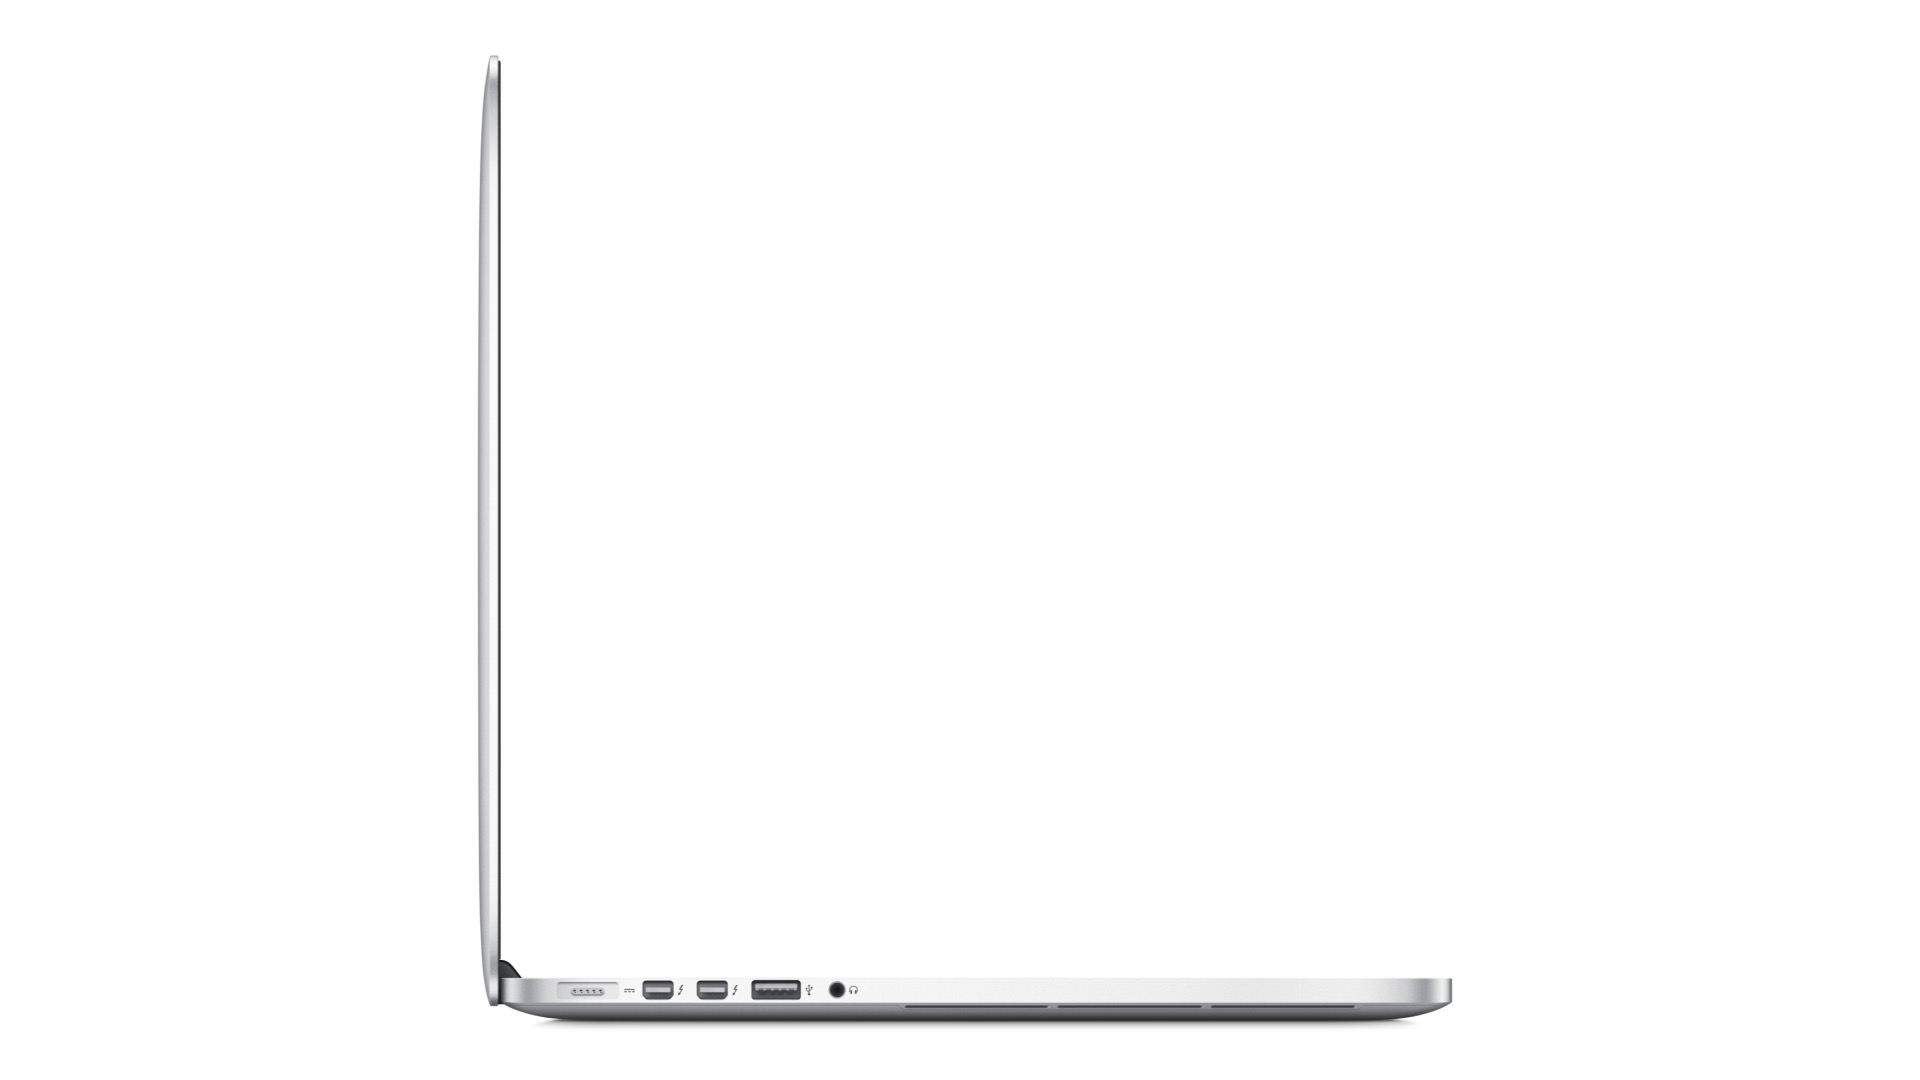 New MacBook Pro Models to Feature Touch ID Power Button? - AppleMagazine